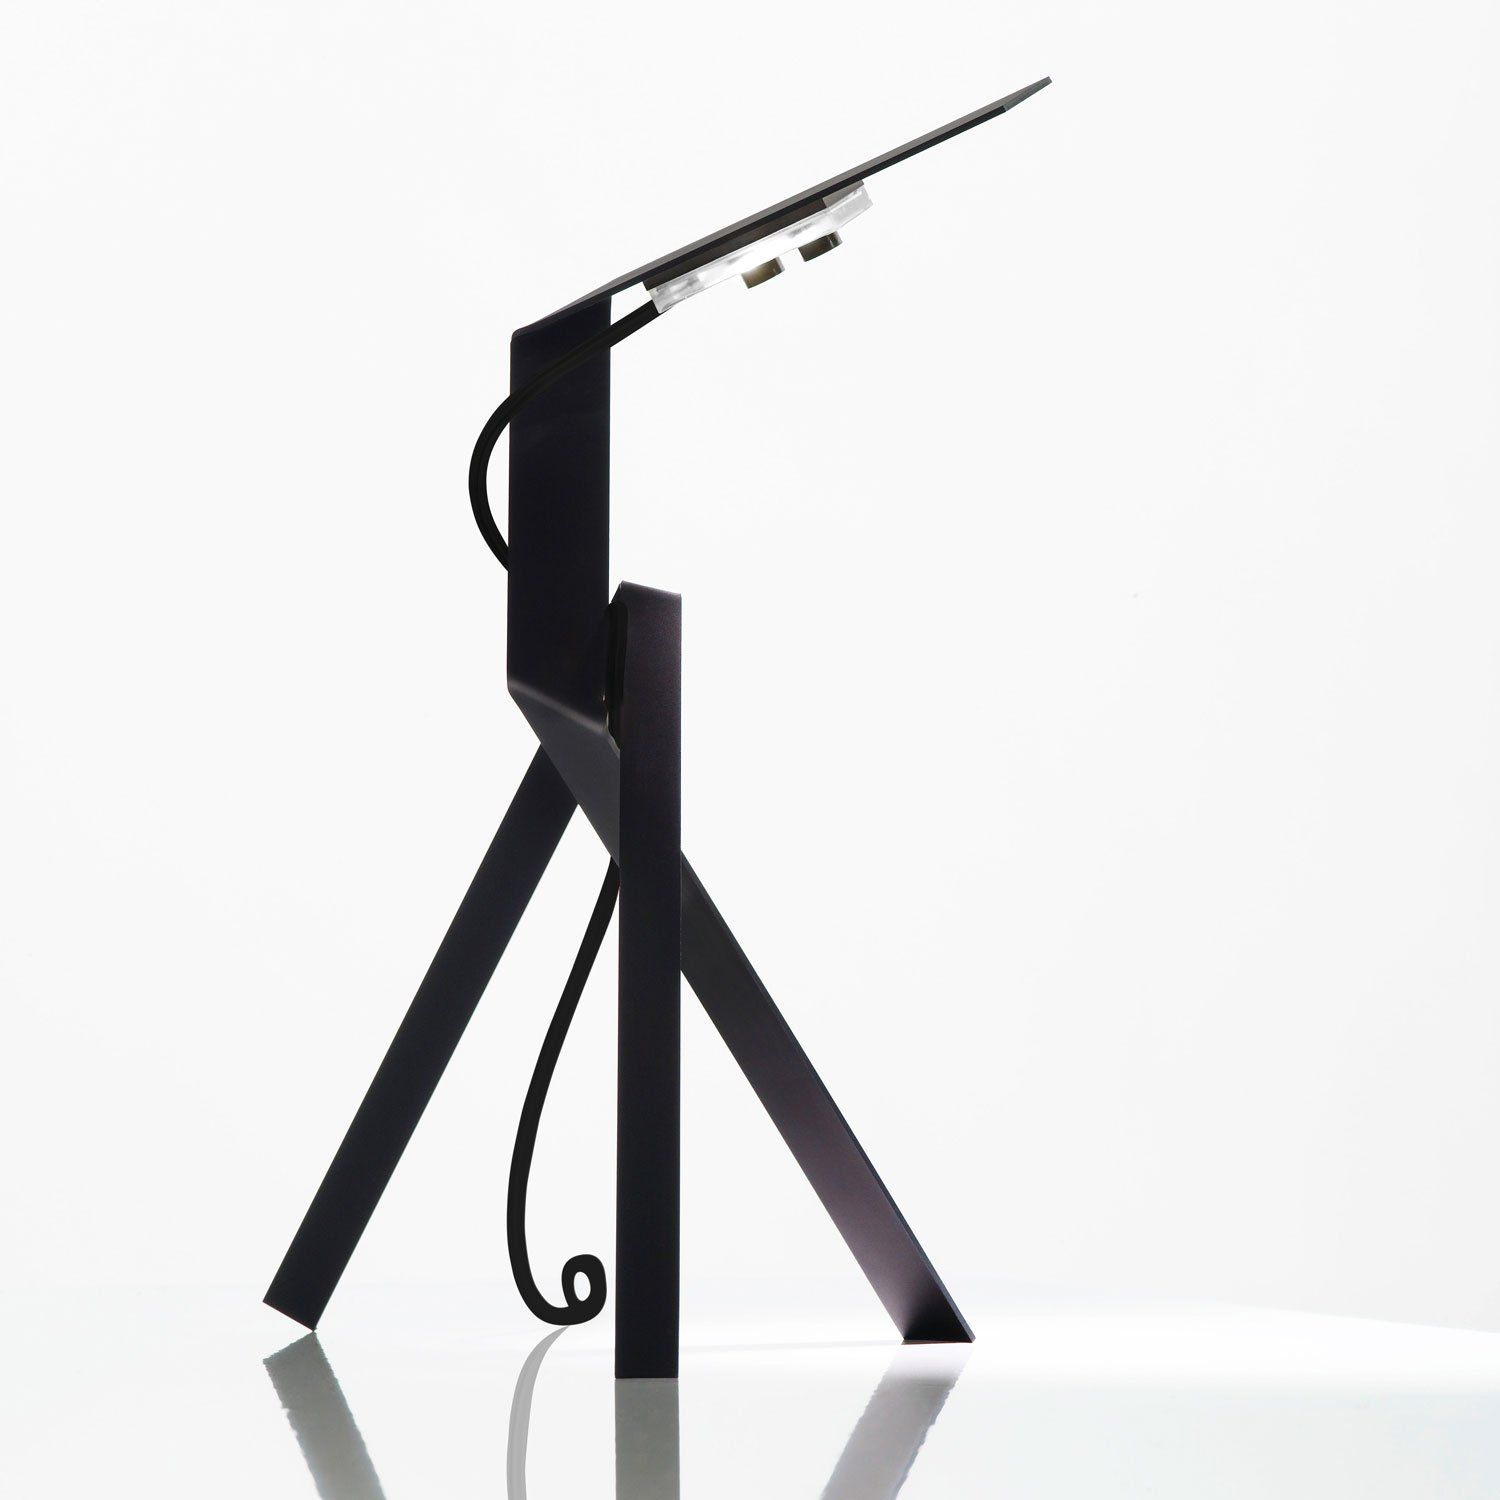 The Jetzt table lamp fromIngo Maurer has been designed by Axel Schmid for Ingo Maurer in 2009. This futureistic table lamp is made of anodized aluminum and is available in three colors, black, blue and gold. Cable in matching color with switch. Lamping is 2 X 2.4W warm white LED's 3000 Kelvin. Manufacturer Model number(s) Jetzt Table Lamp Dimensions in inches and cm Height: 14